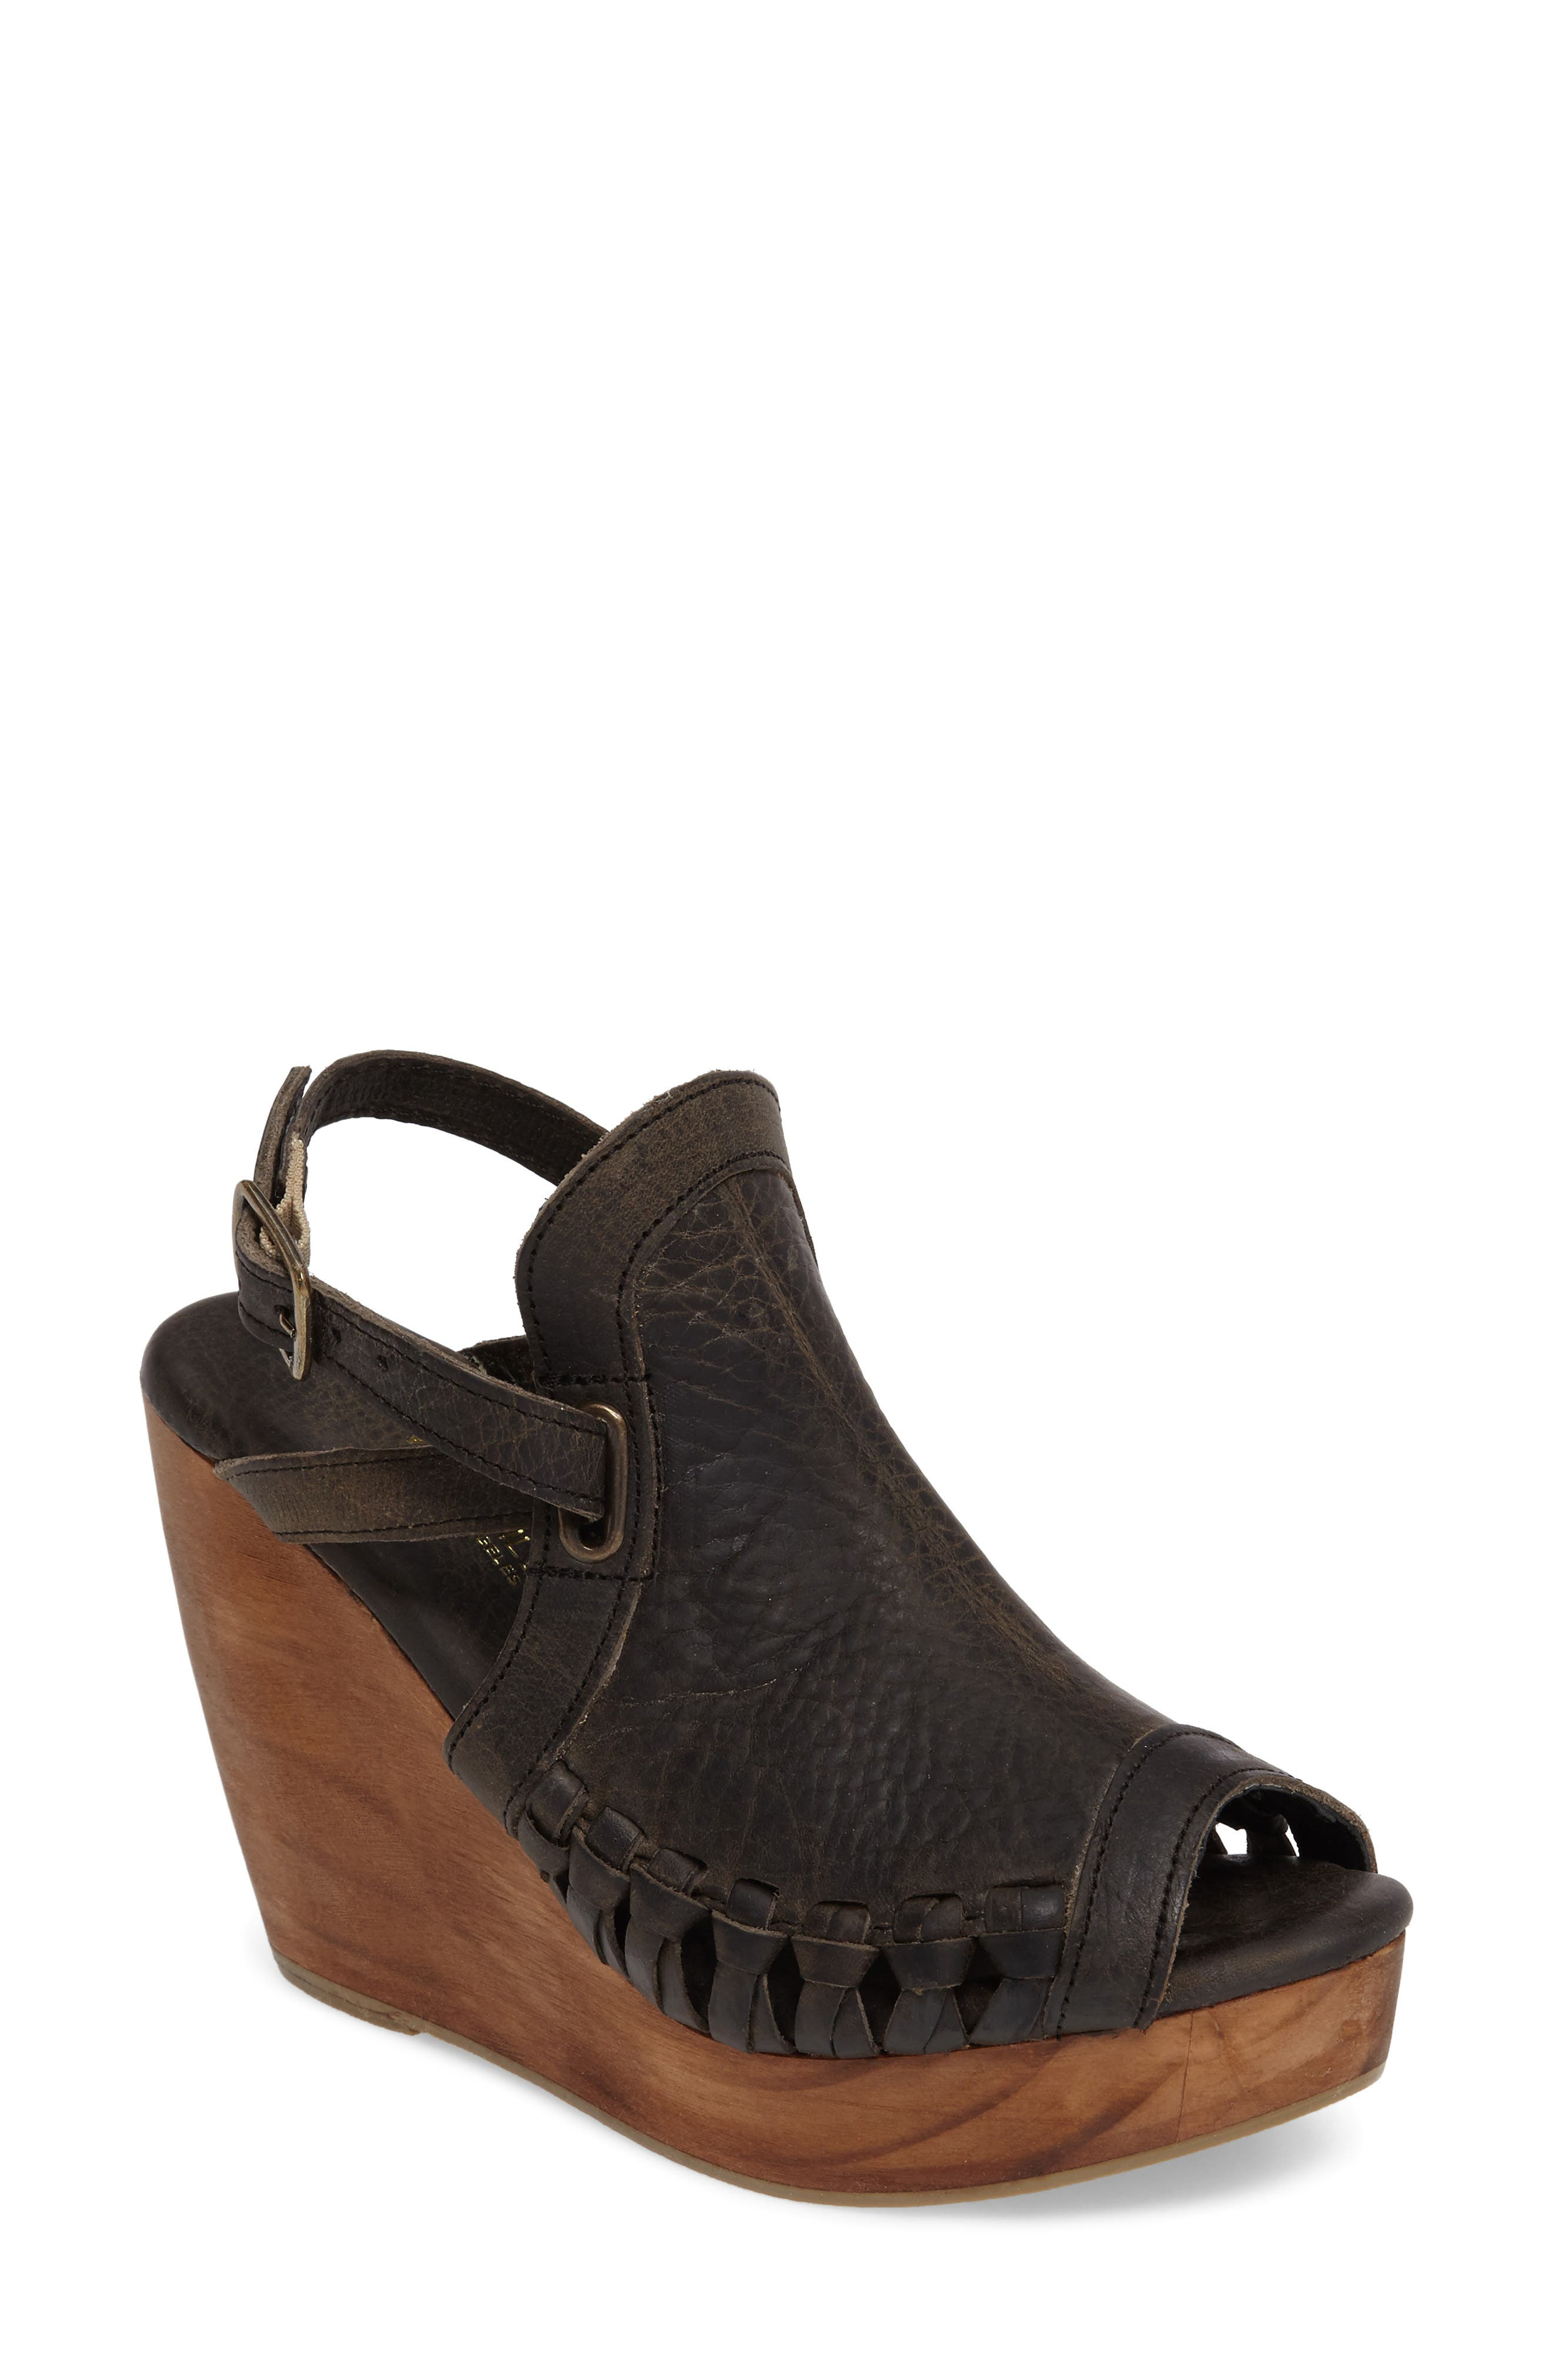 Carry Wedge Sandal,                         Main,                         color, 020